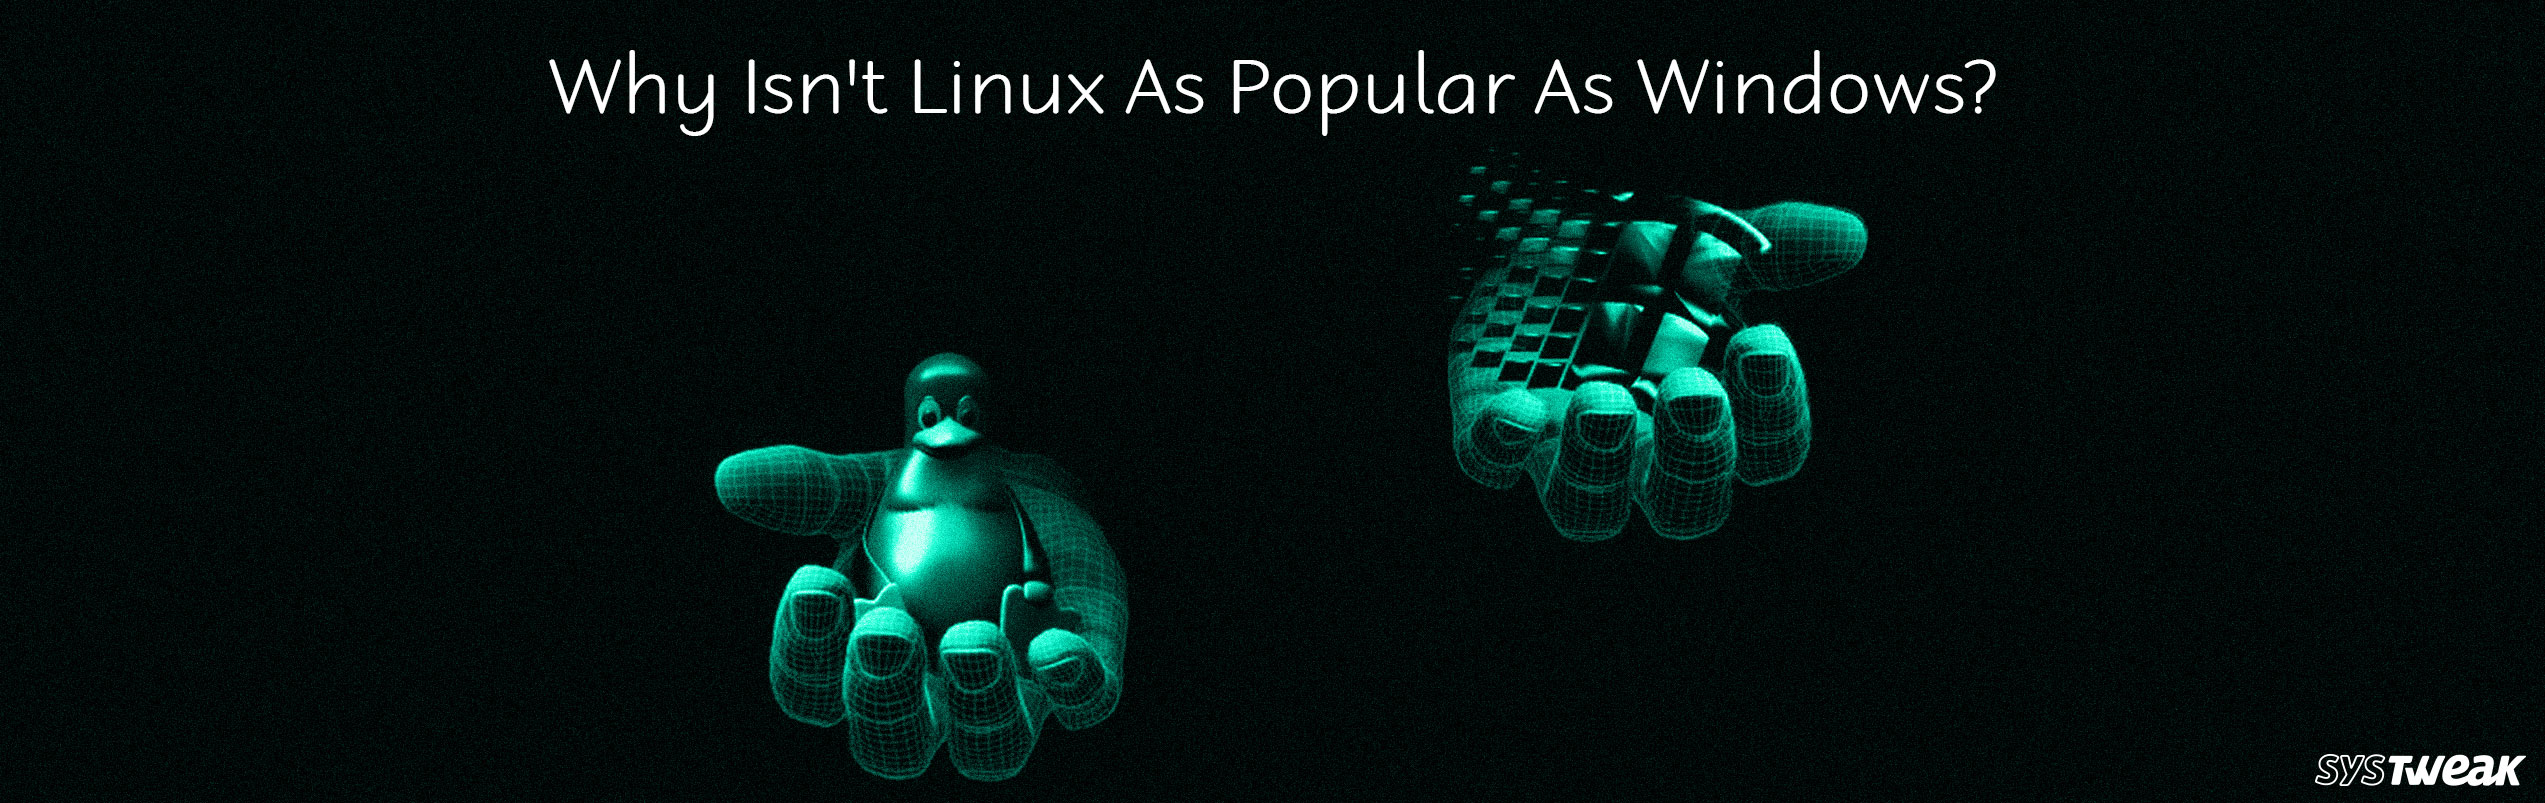 Why Isn't Linux As Popular As Windows?